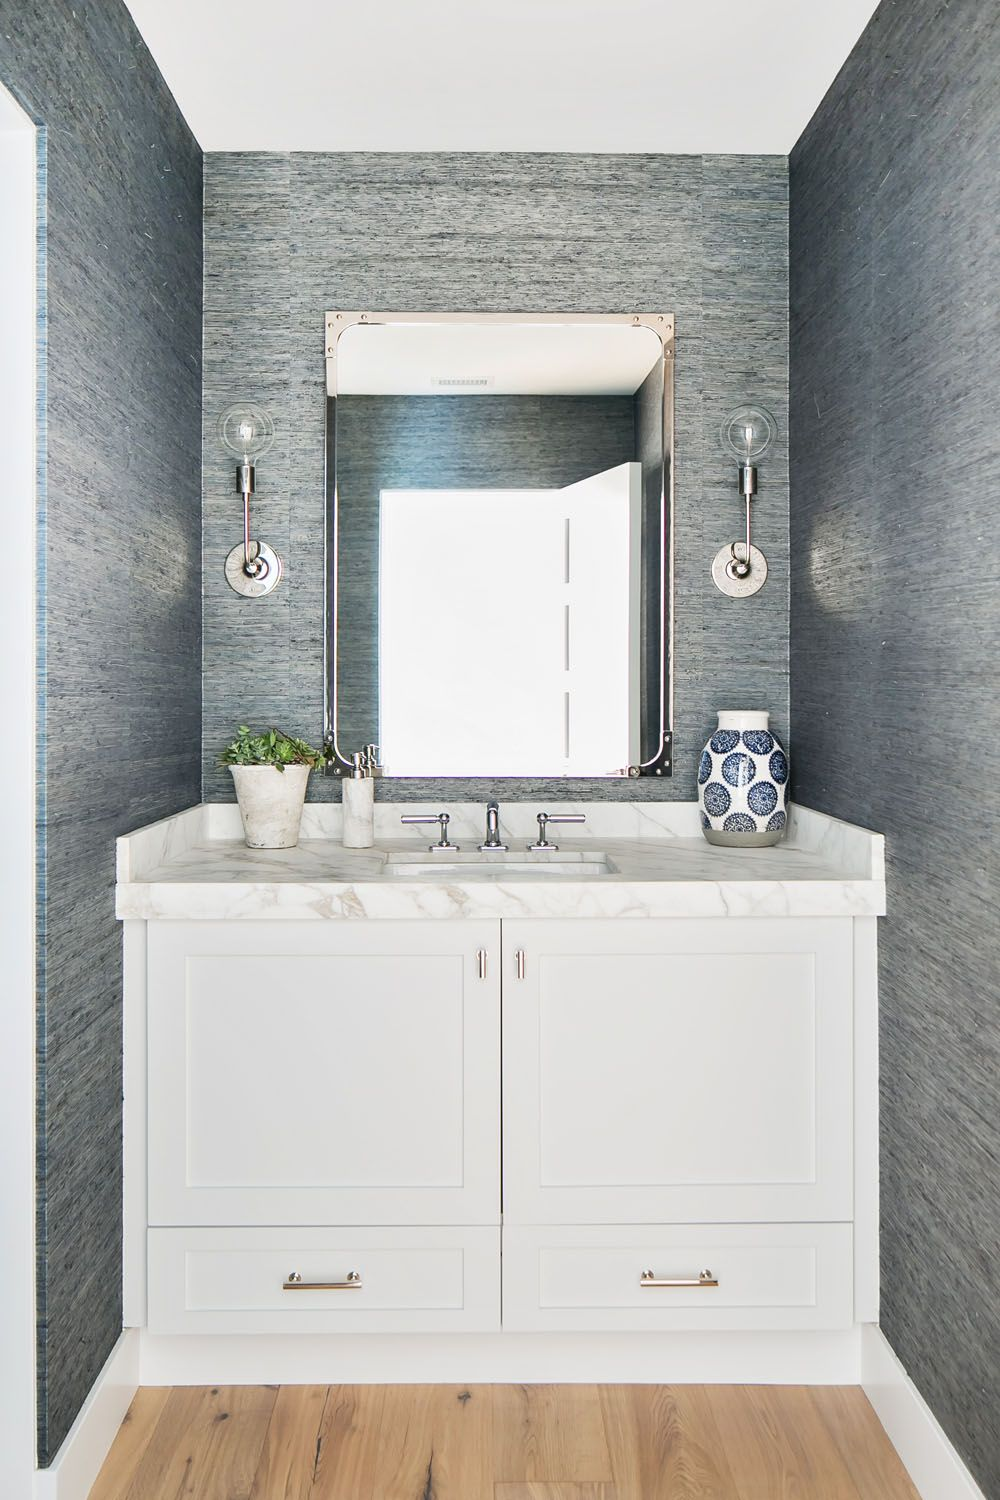 East Coast Style Finds A Home On The West Coast Rue Bathroom Style East Coast Style Finding A House